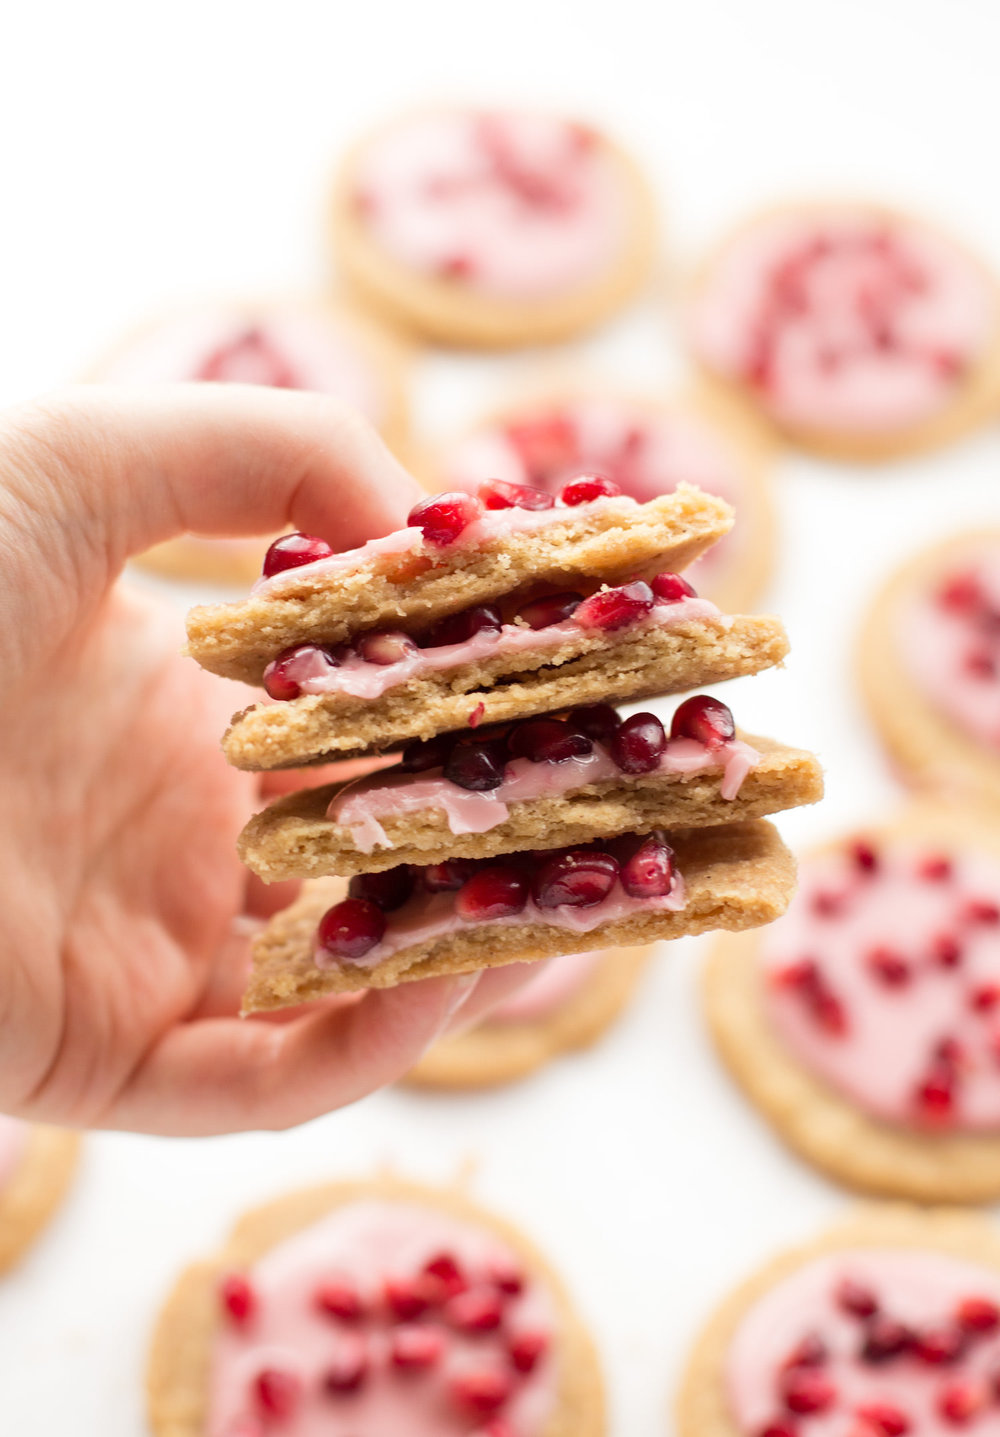 Brown Sugar Shortbread Cookies with Pomegranates: tender, melt-in-your-mouth, six-ingredient shortbread cookies topped with a two-ingredient, naturally colored glaze and pomegranate seeds. | TrufflesandTrends.com